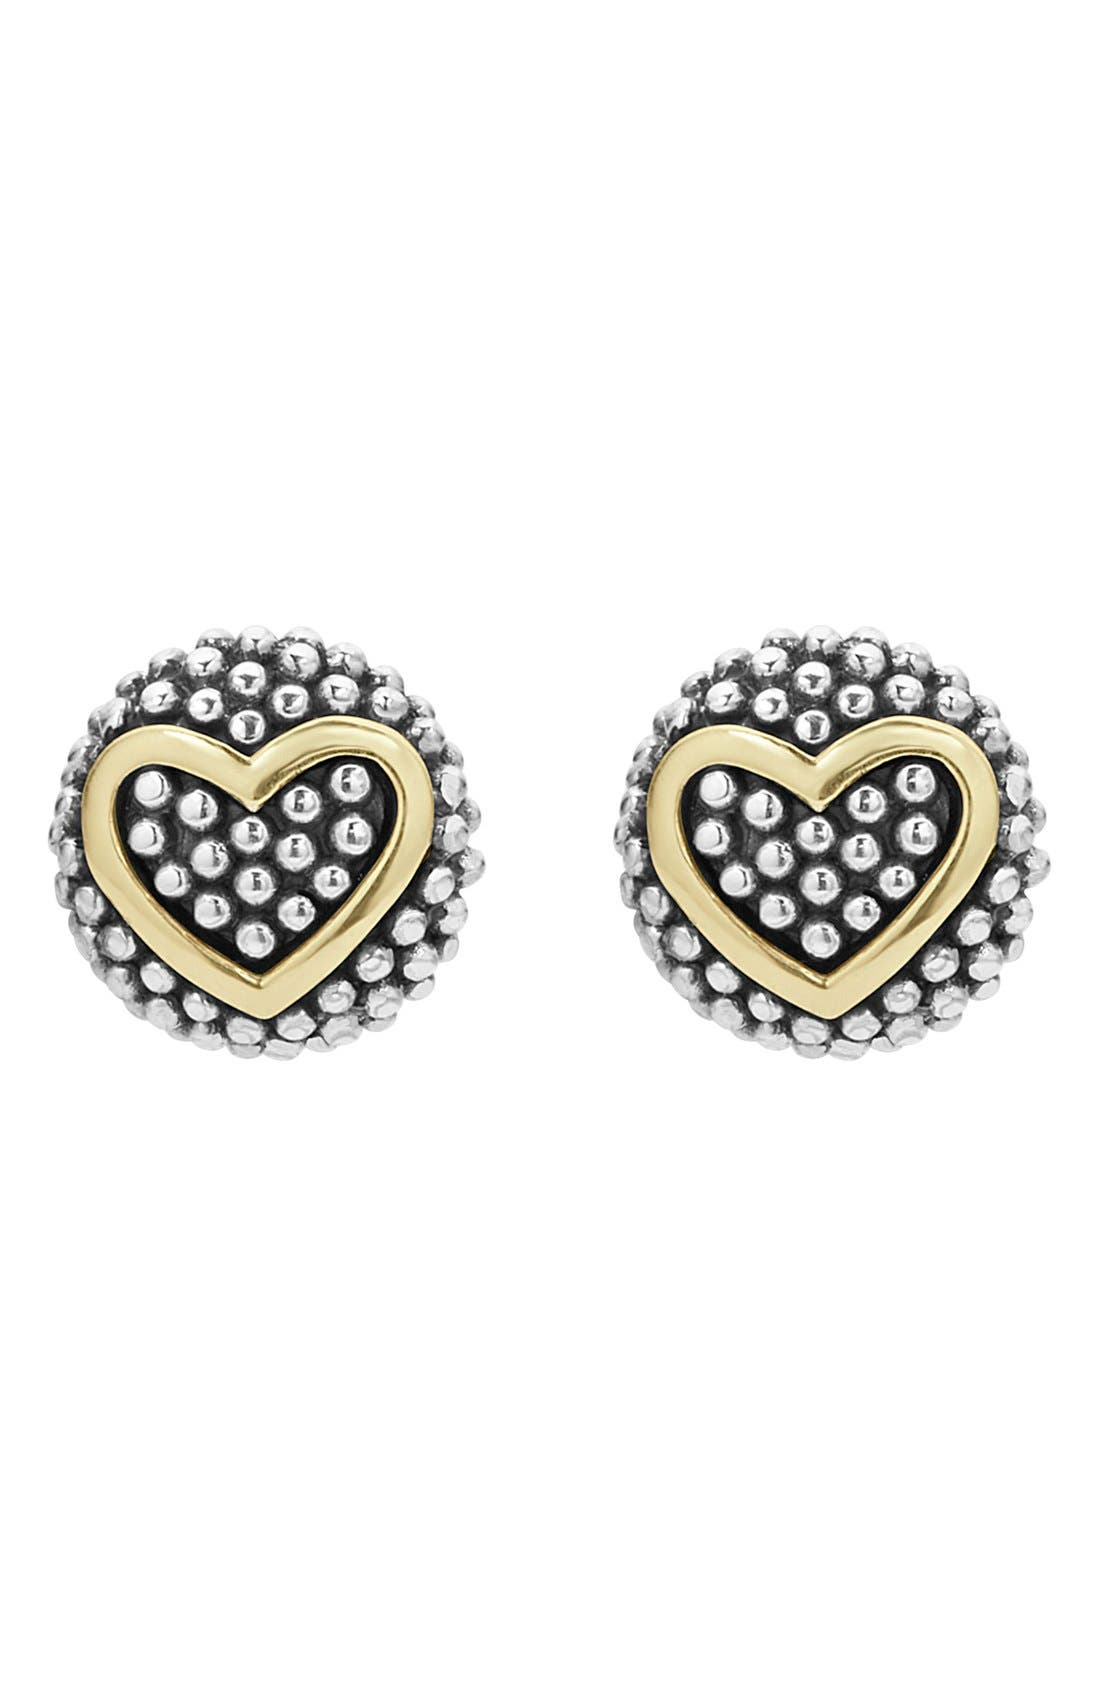 'Caviar' Heart Stud Earrings,                         Main,                         color, Silver/ Gold